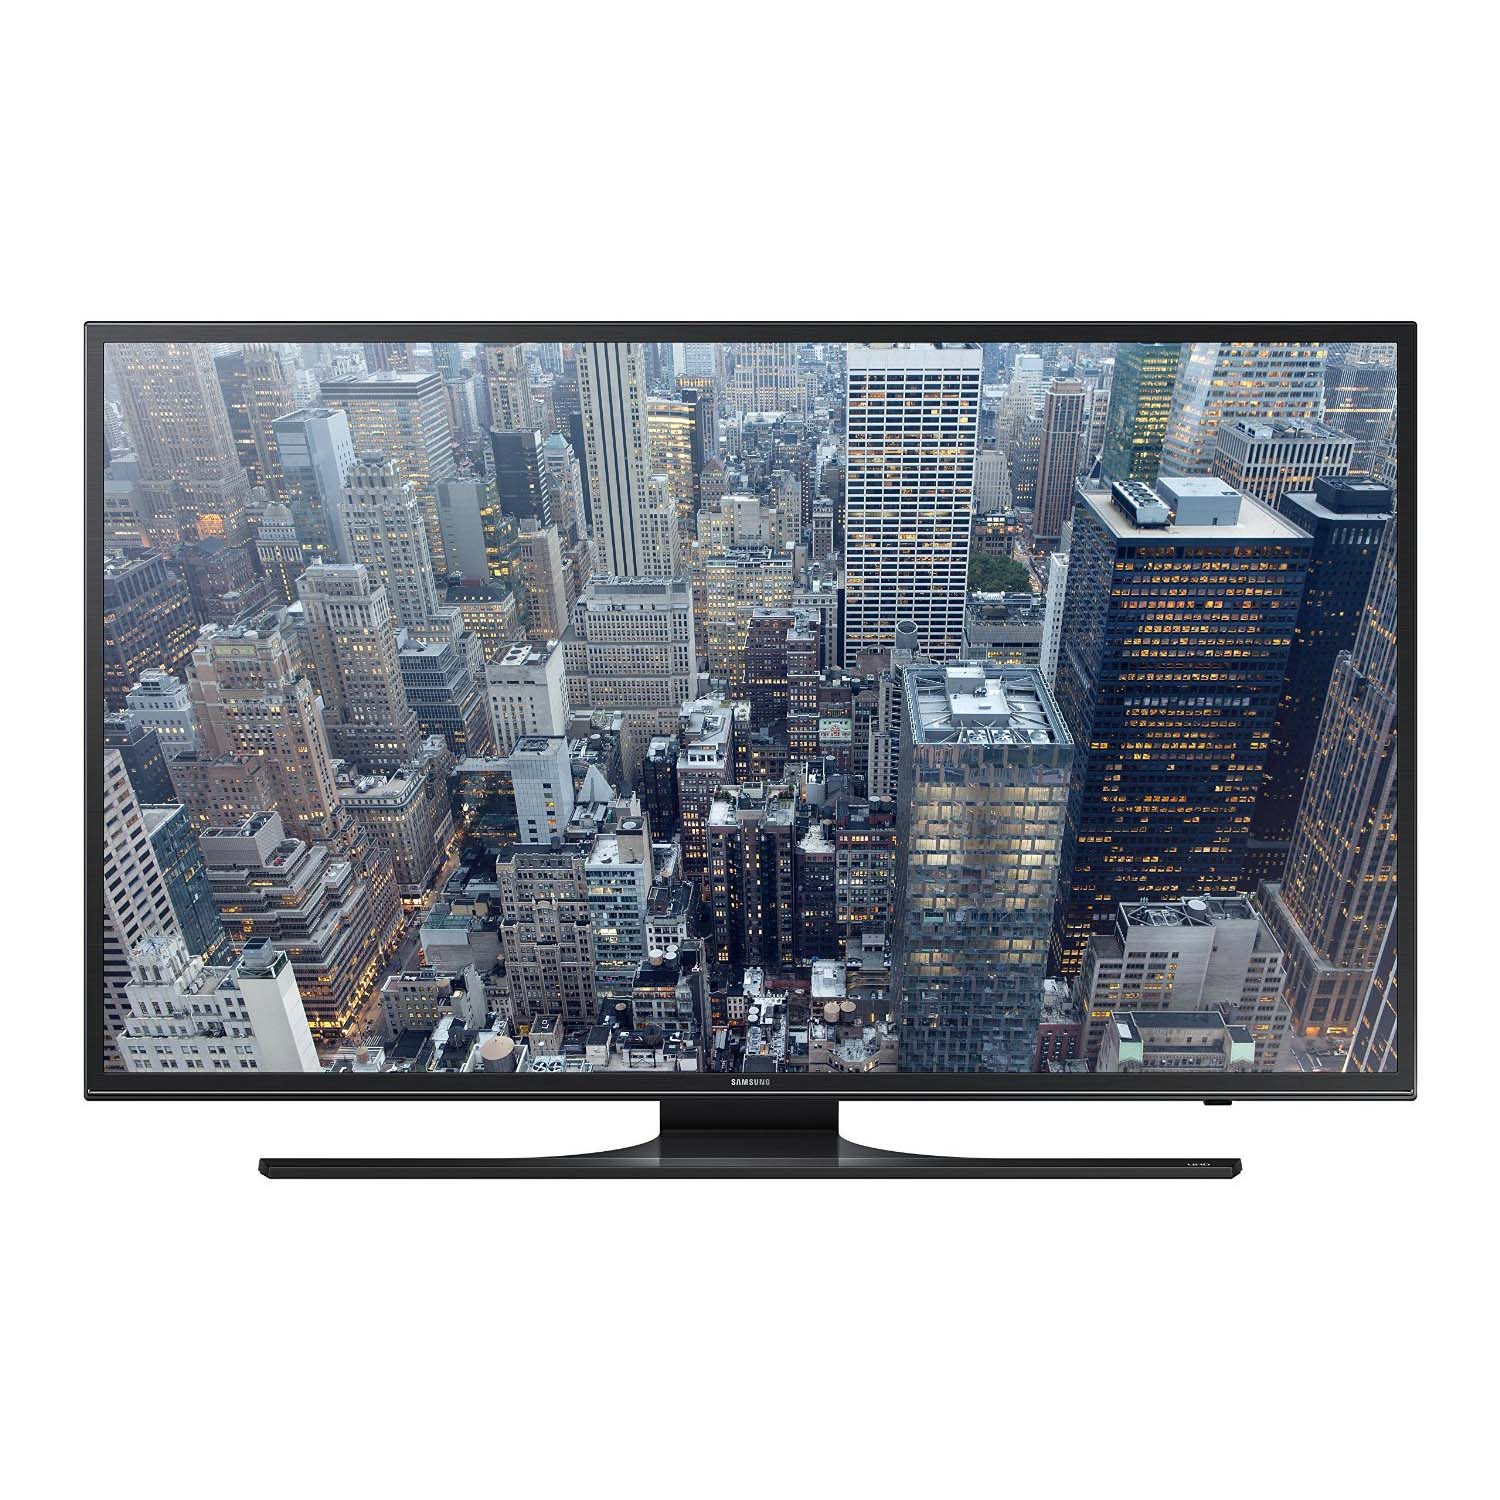 Samsung UN60JU6500 60-Inch 4K Ultra HD Smart LED TV (2015 Model) *관부가세 별도*